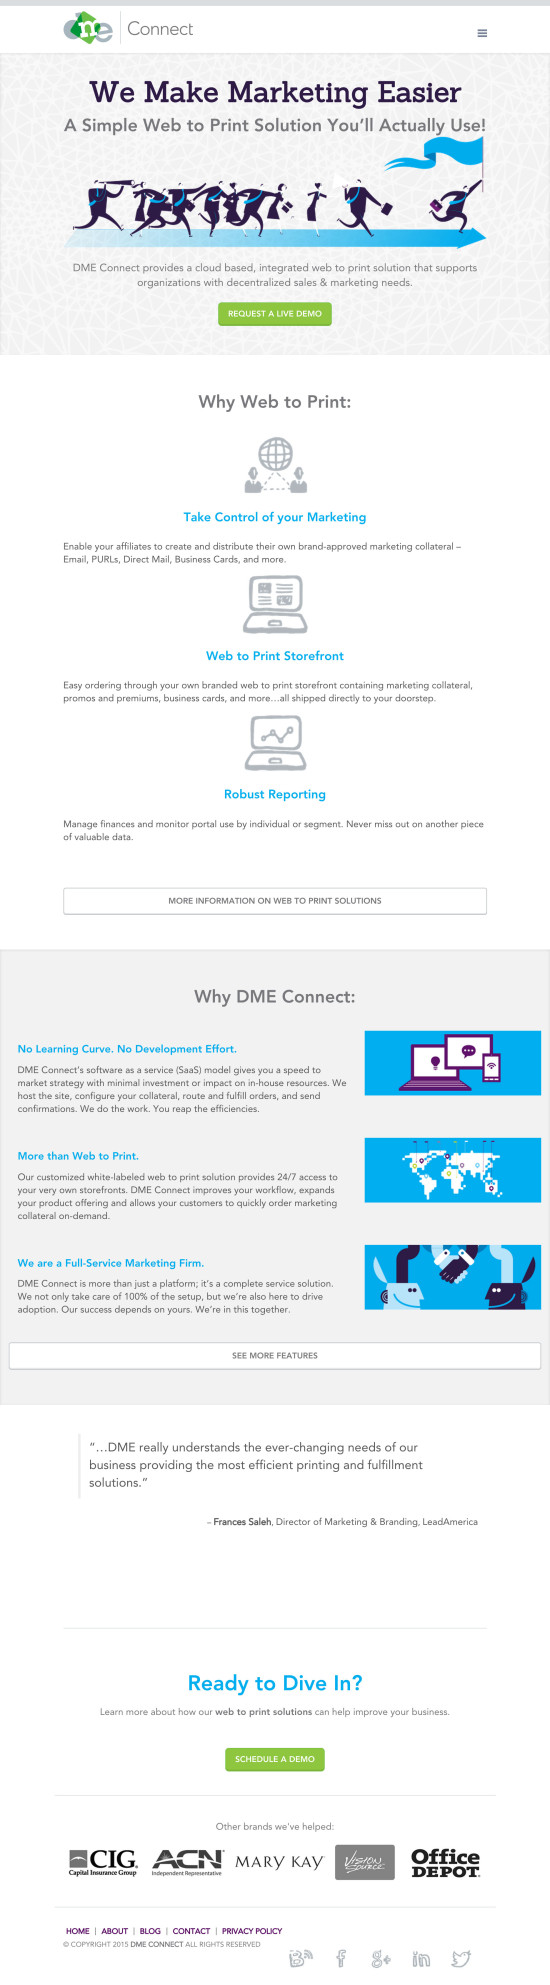 DME Connect